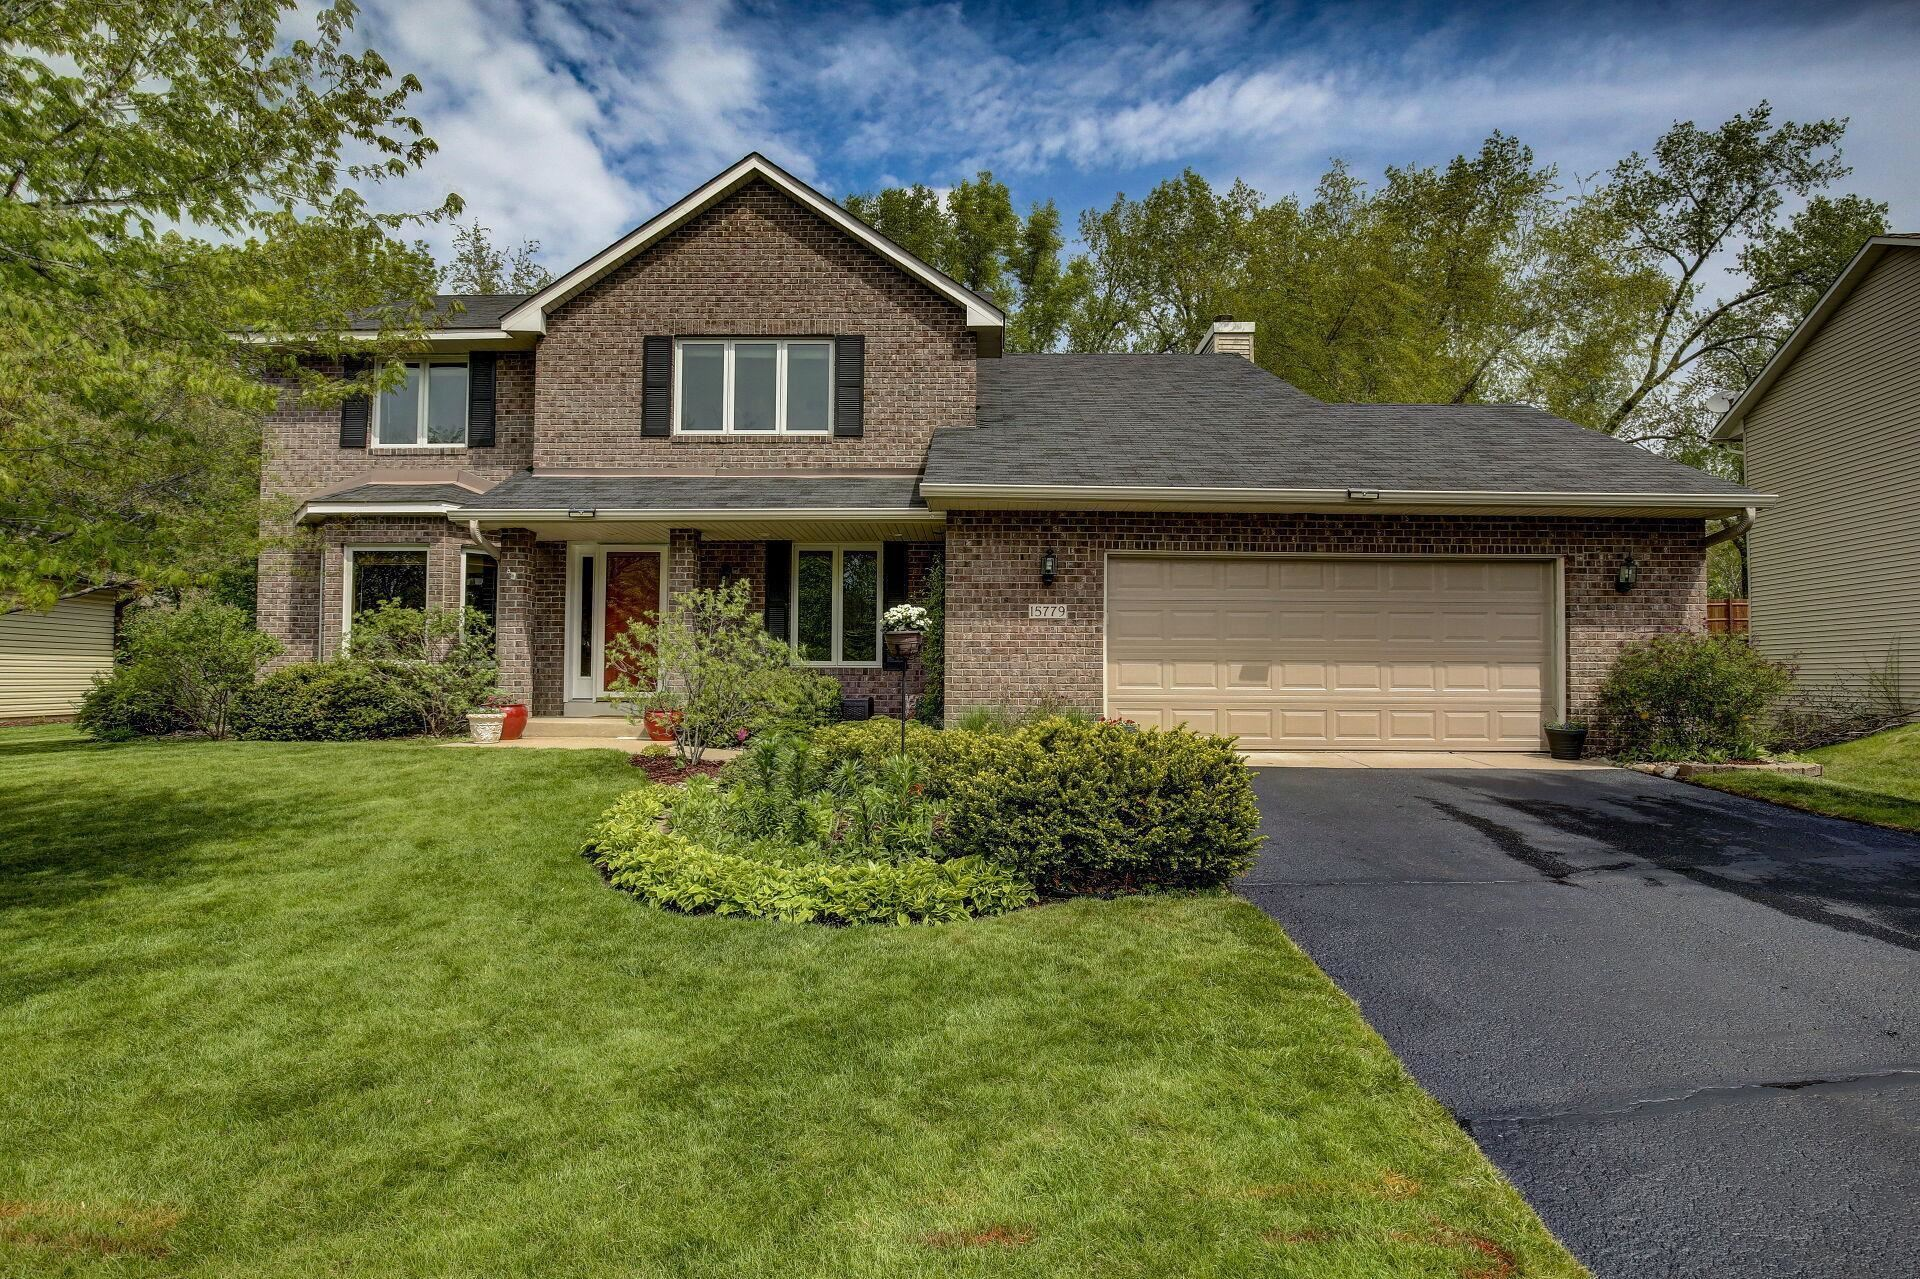 Photo of 15779 Highview Drive, Apple Valley, MN 55124 (MLS # 5756654)